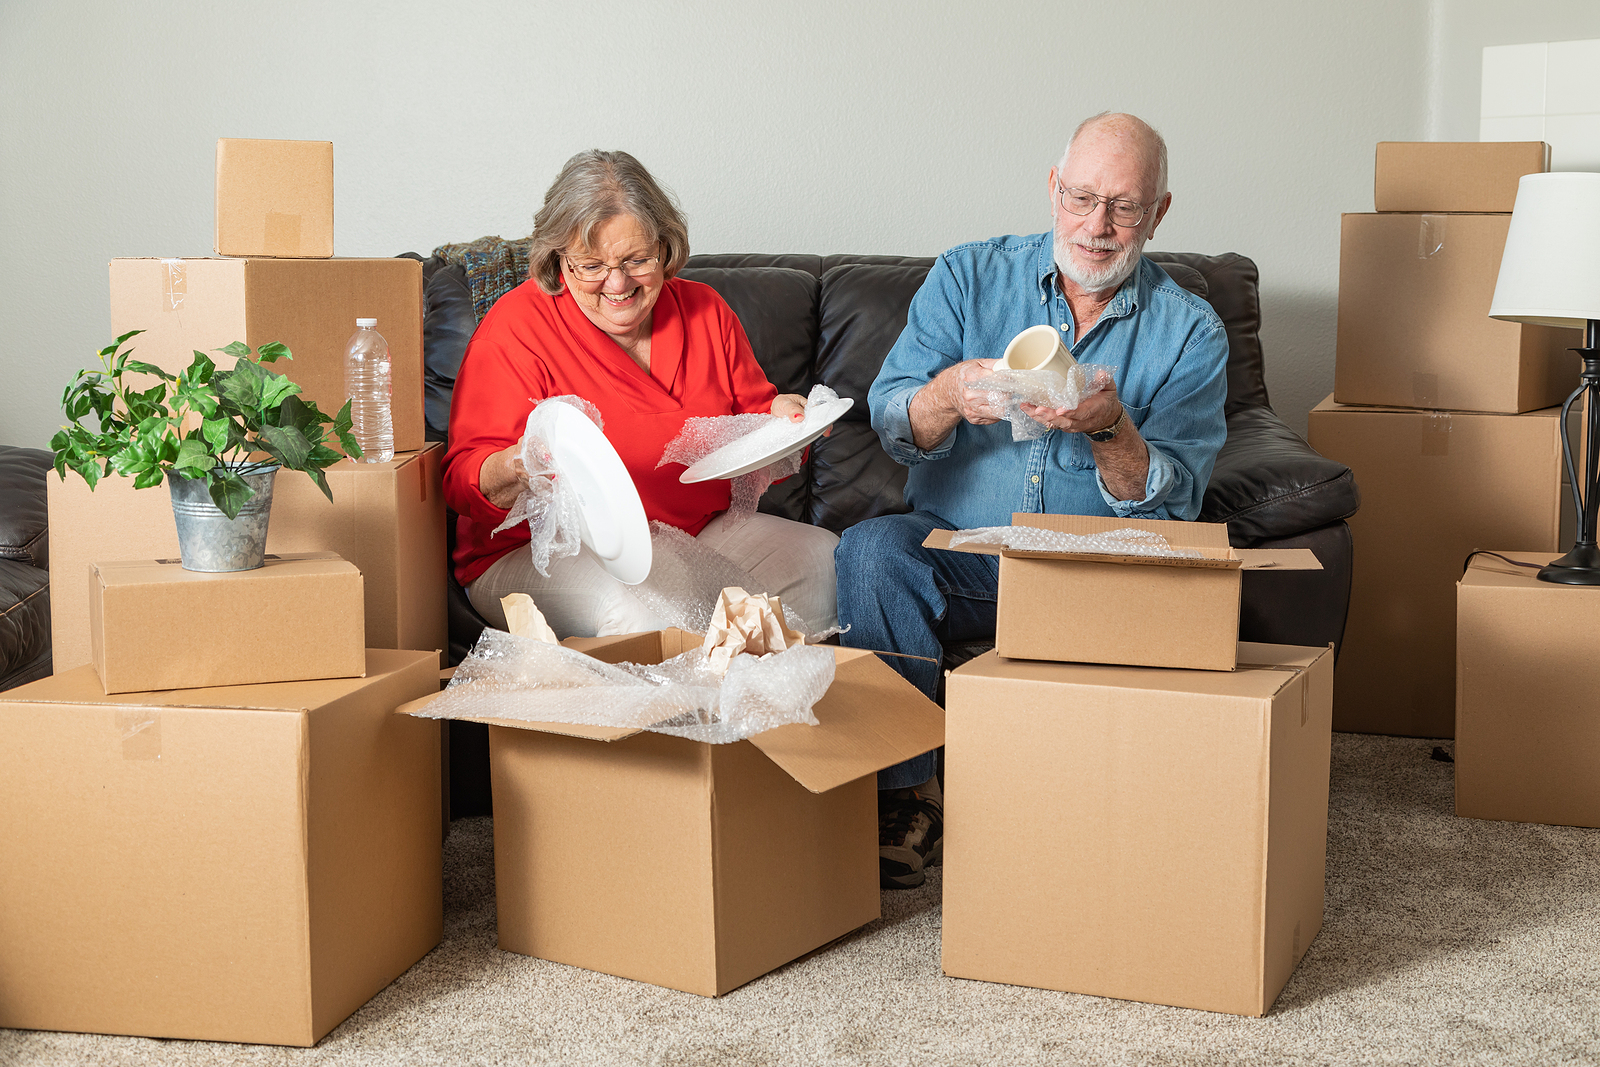 Happy senior couple packs their belongings into boxes preparing to move